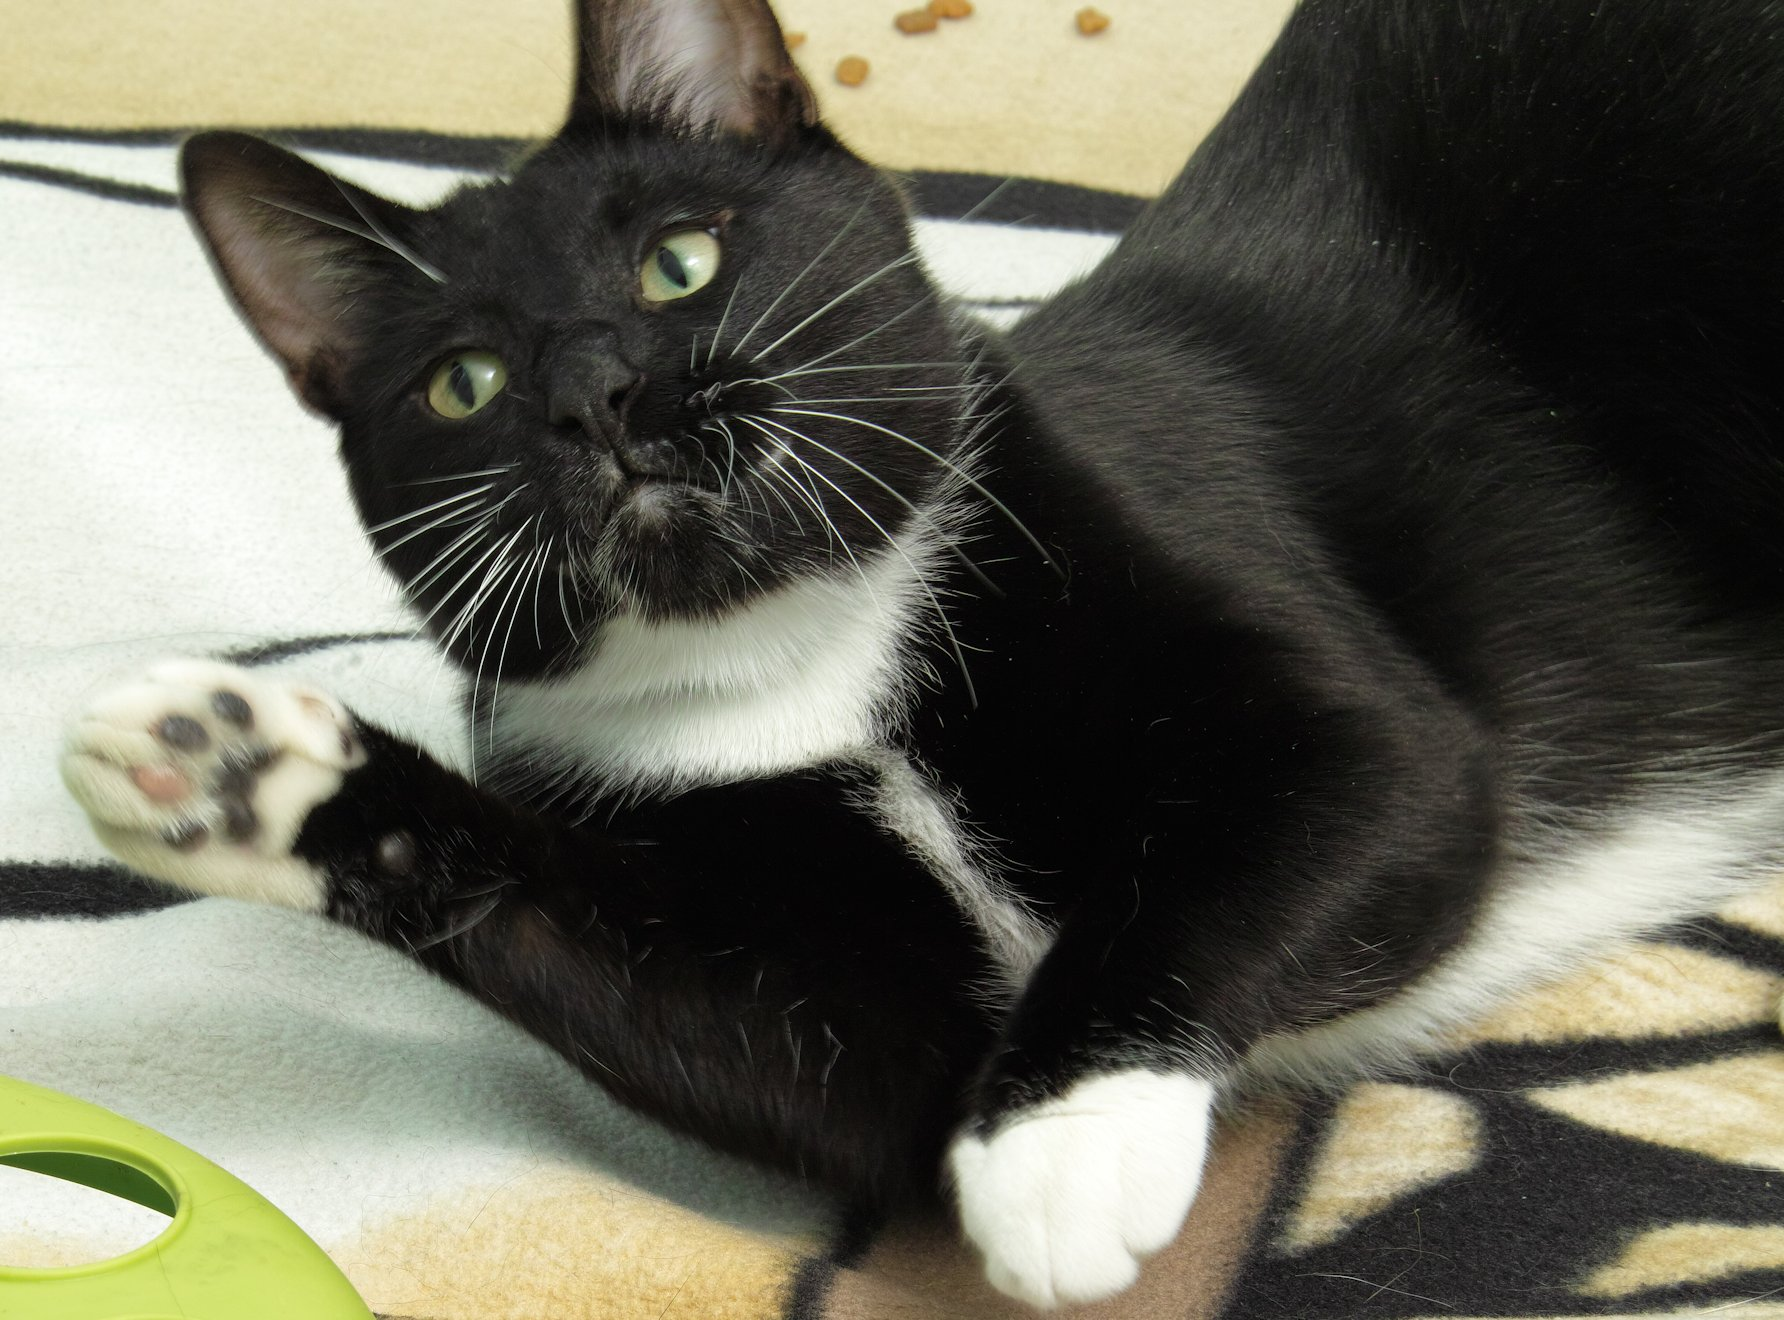 Kye is a 3 year old domestic short hair. He is a very handsome, sweet boy who is looking for his forever home! He prefers not to be picked up but will spend hours by your side and in your lap!